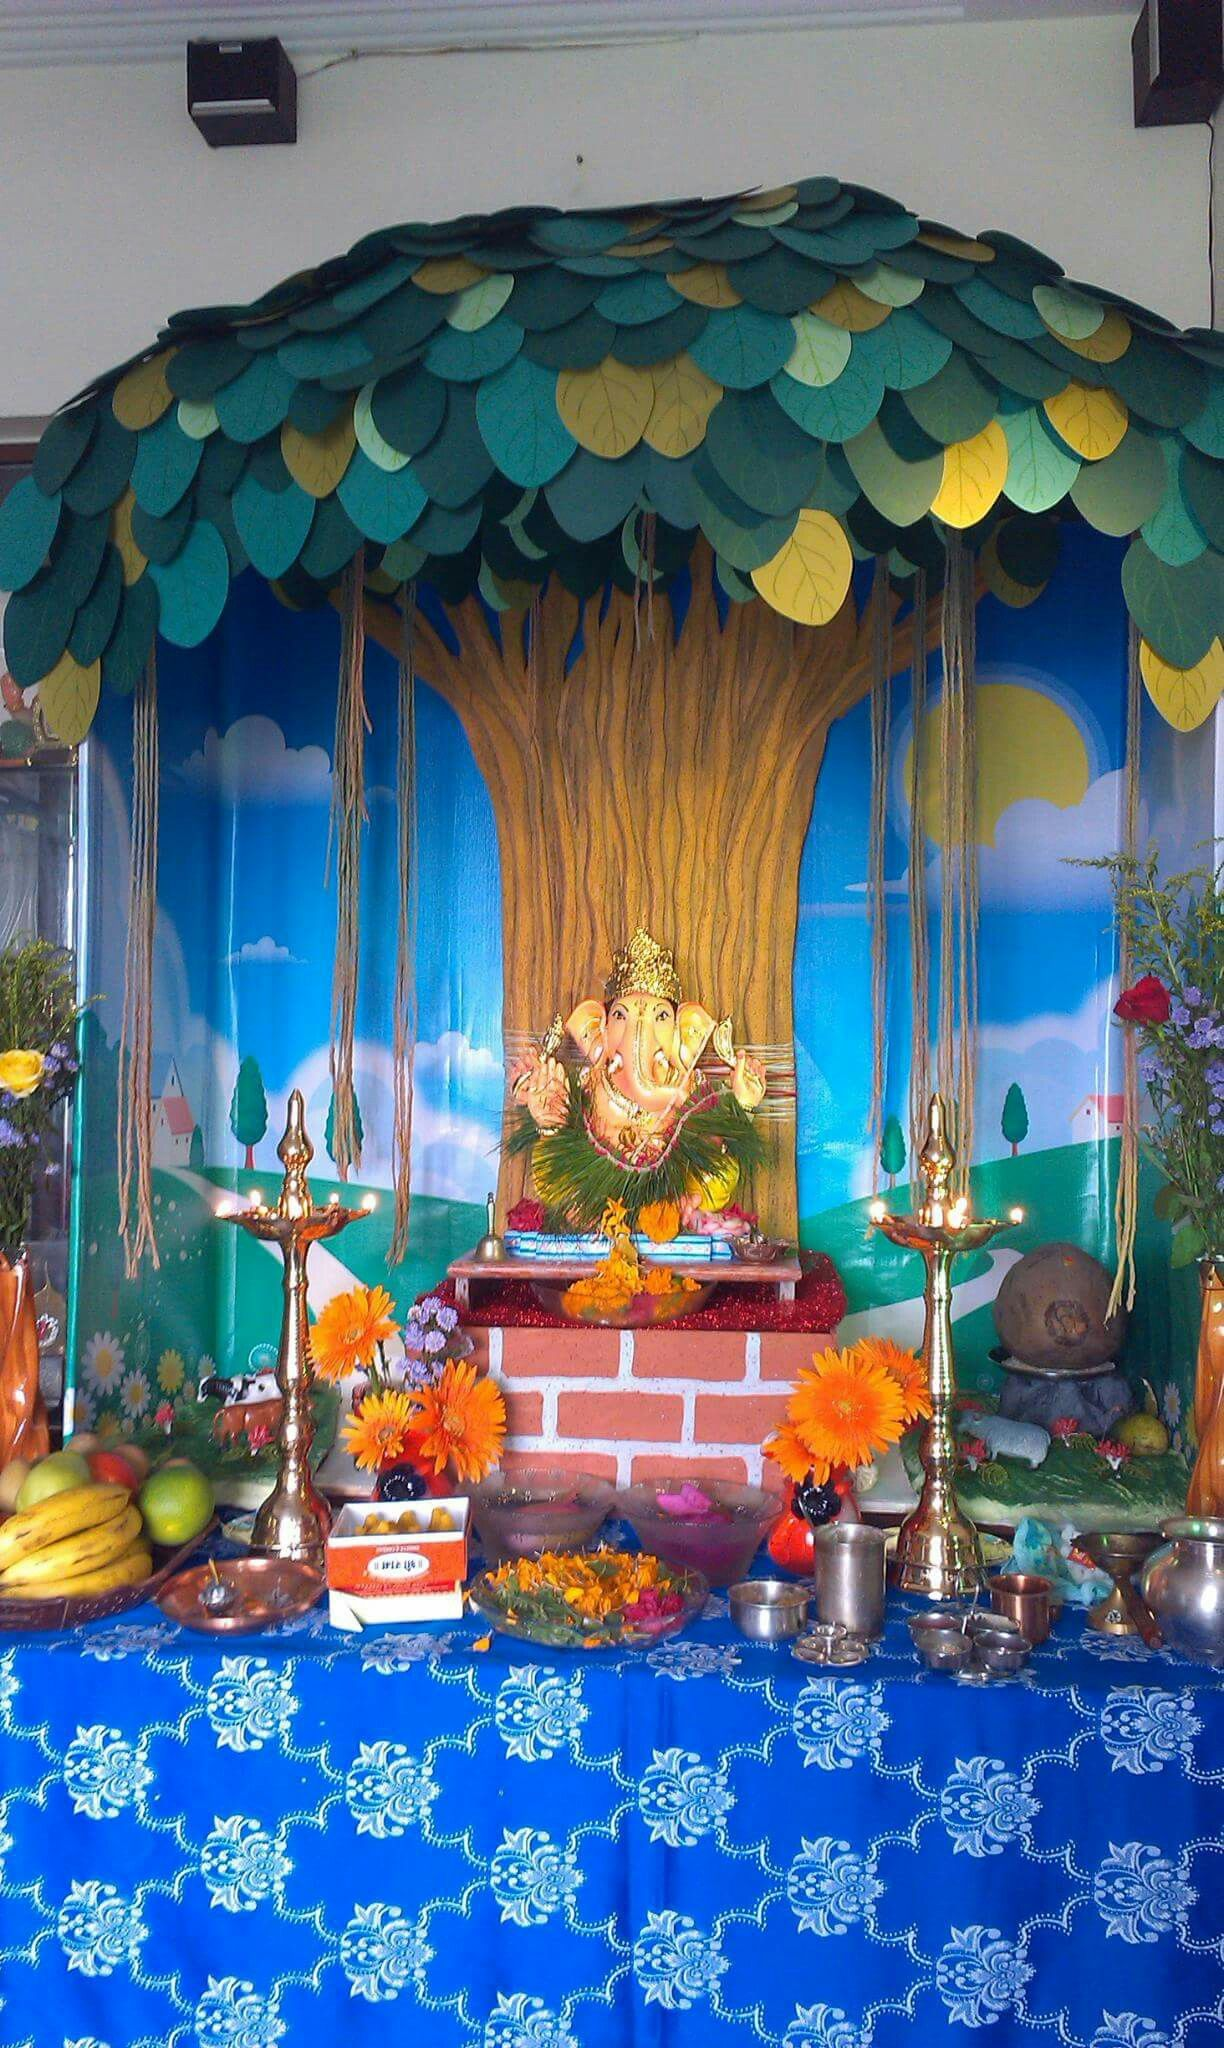 Ganapati decoration idea Ganapati decoration idea